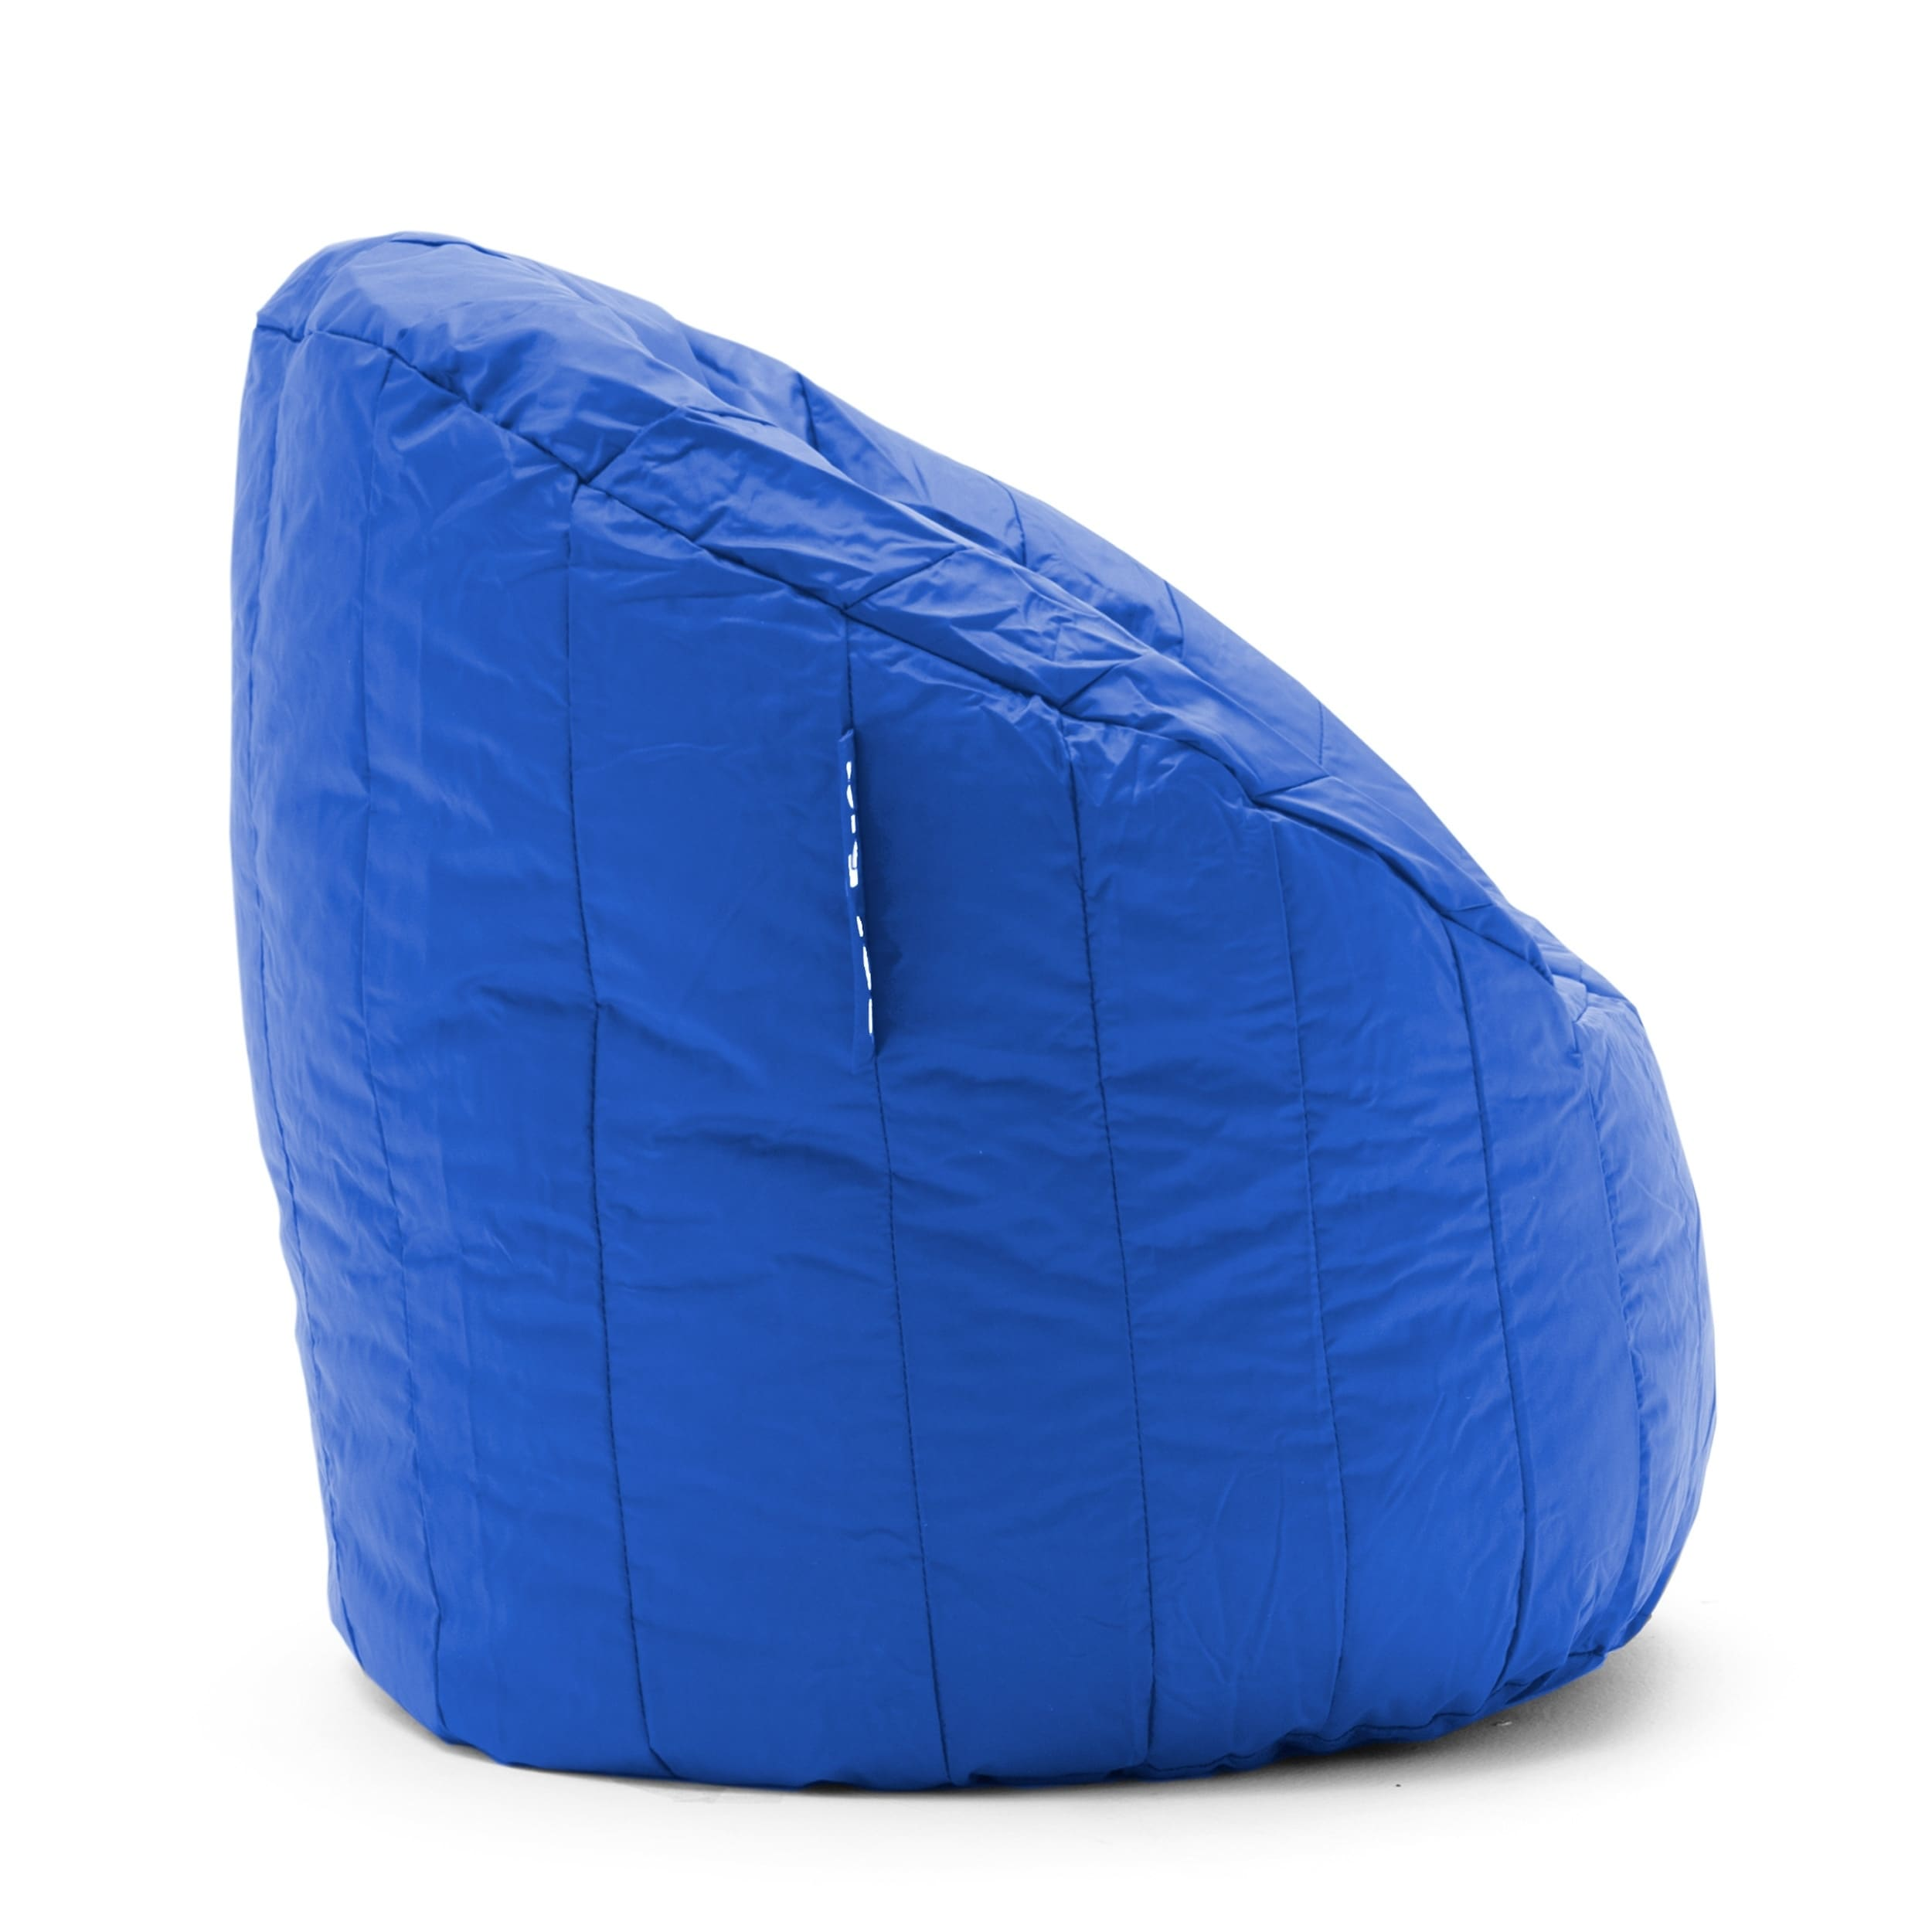 Shop Big Joe Lumin Bean Bag Chair Multiple Colors - Free Shipping Today - Overstock.com - 20750115  sc 1 st  Overstock.com & Shop Big Joe Lumin Bean Bag Chair Multiple Colors - Free Shipping ...